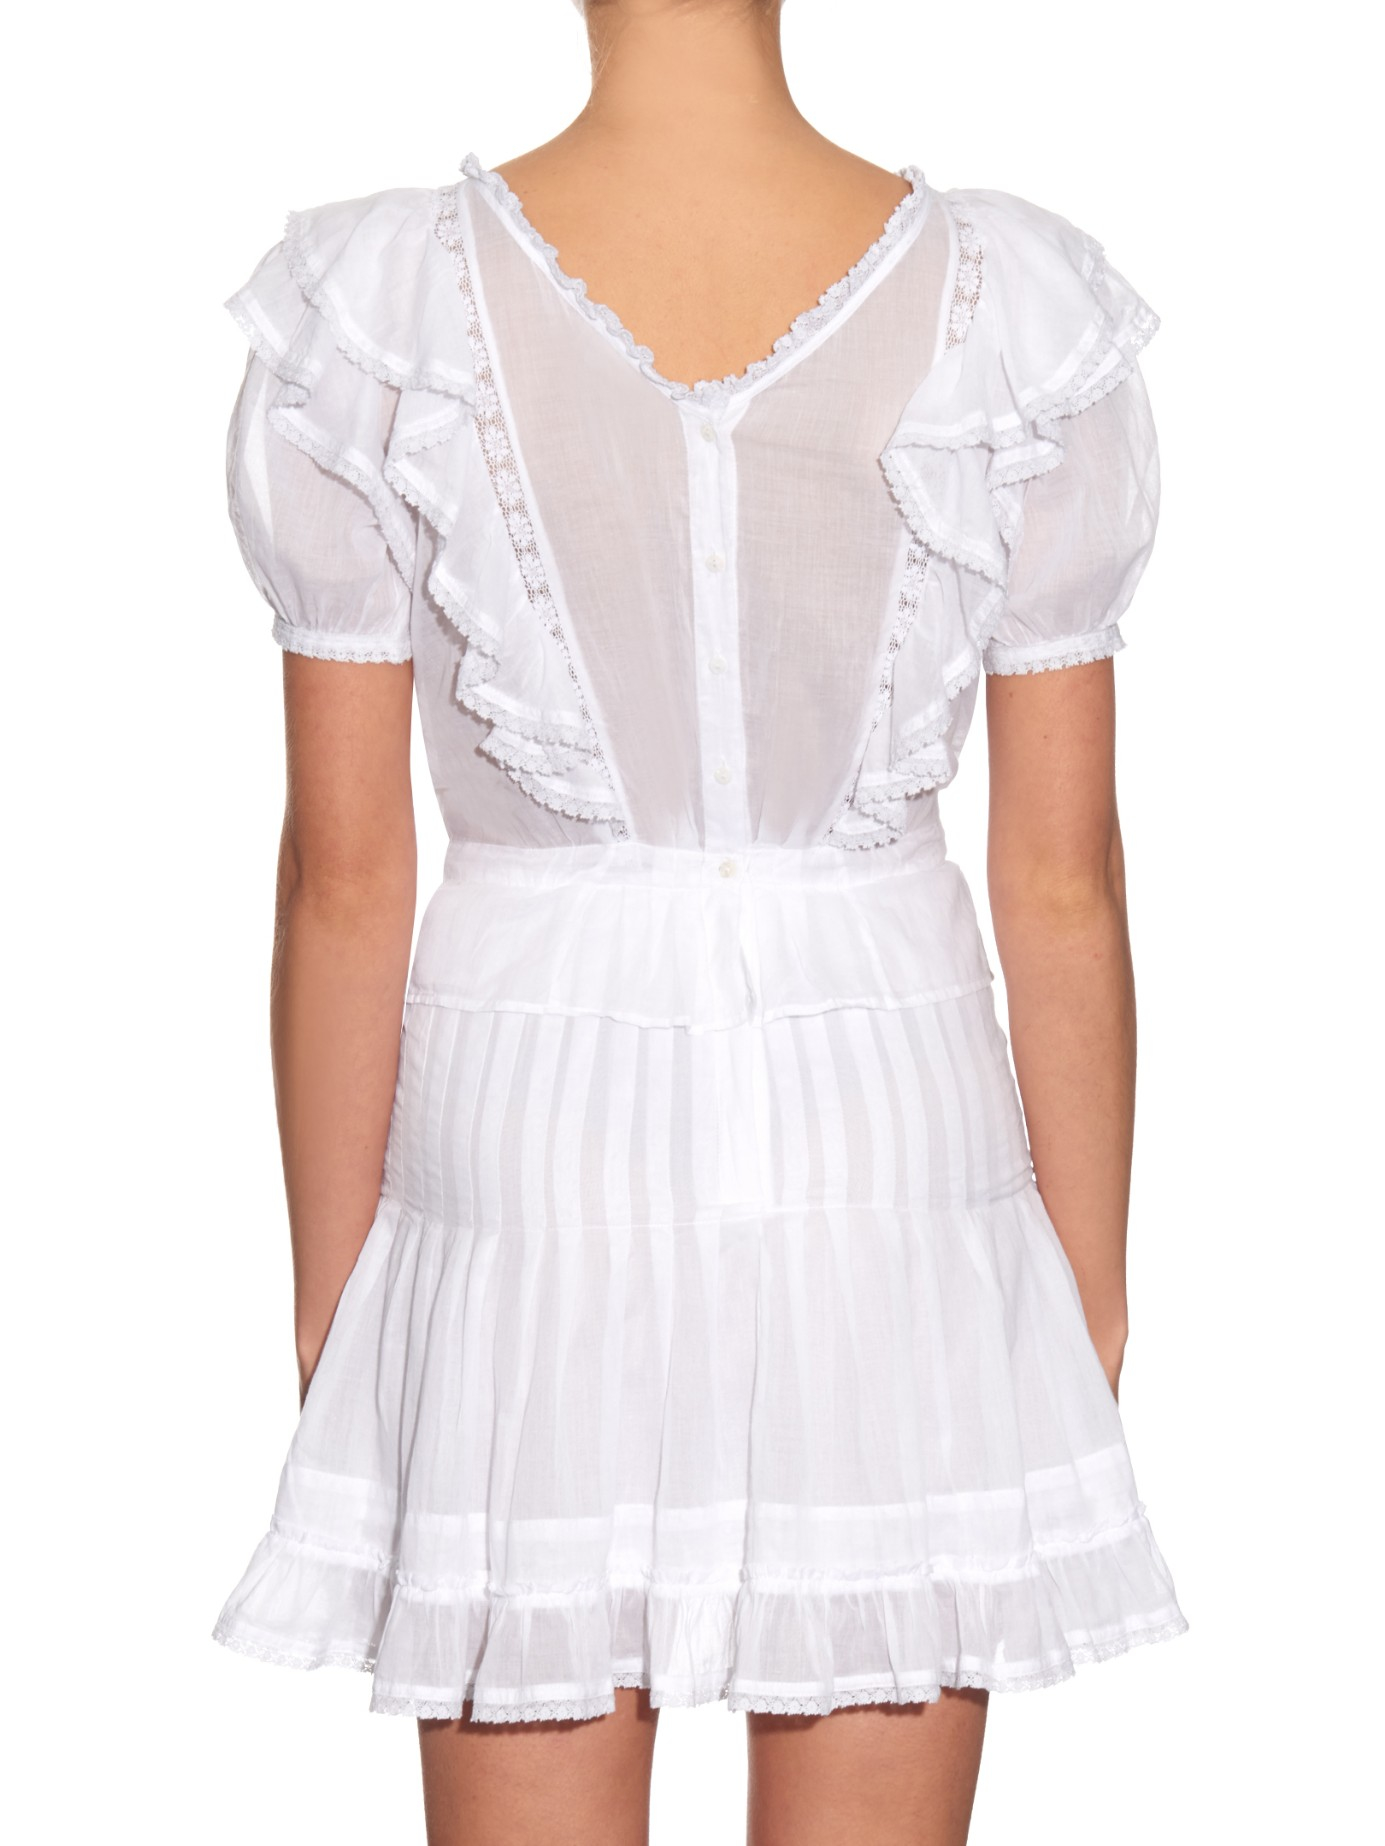 60f9925a36c Étoile Isabel Marant Naoko Bib-front Ruffled Dress in White - Lyst